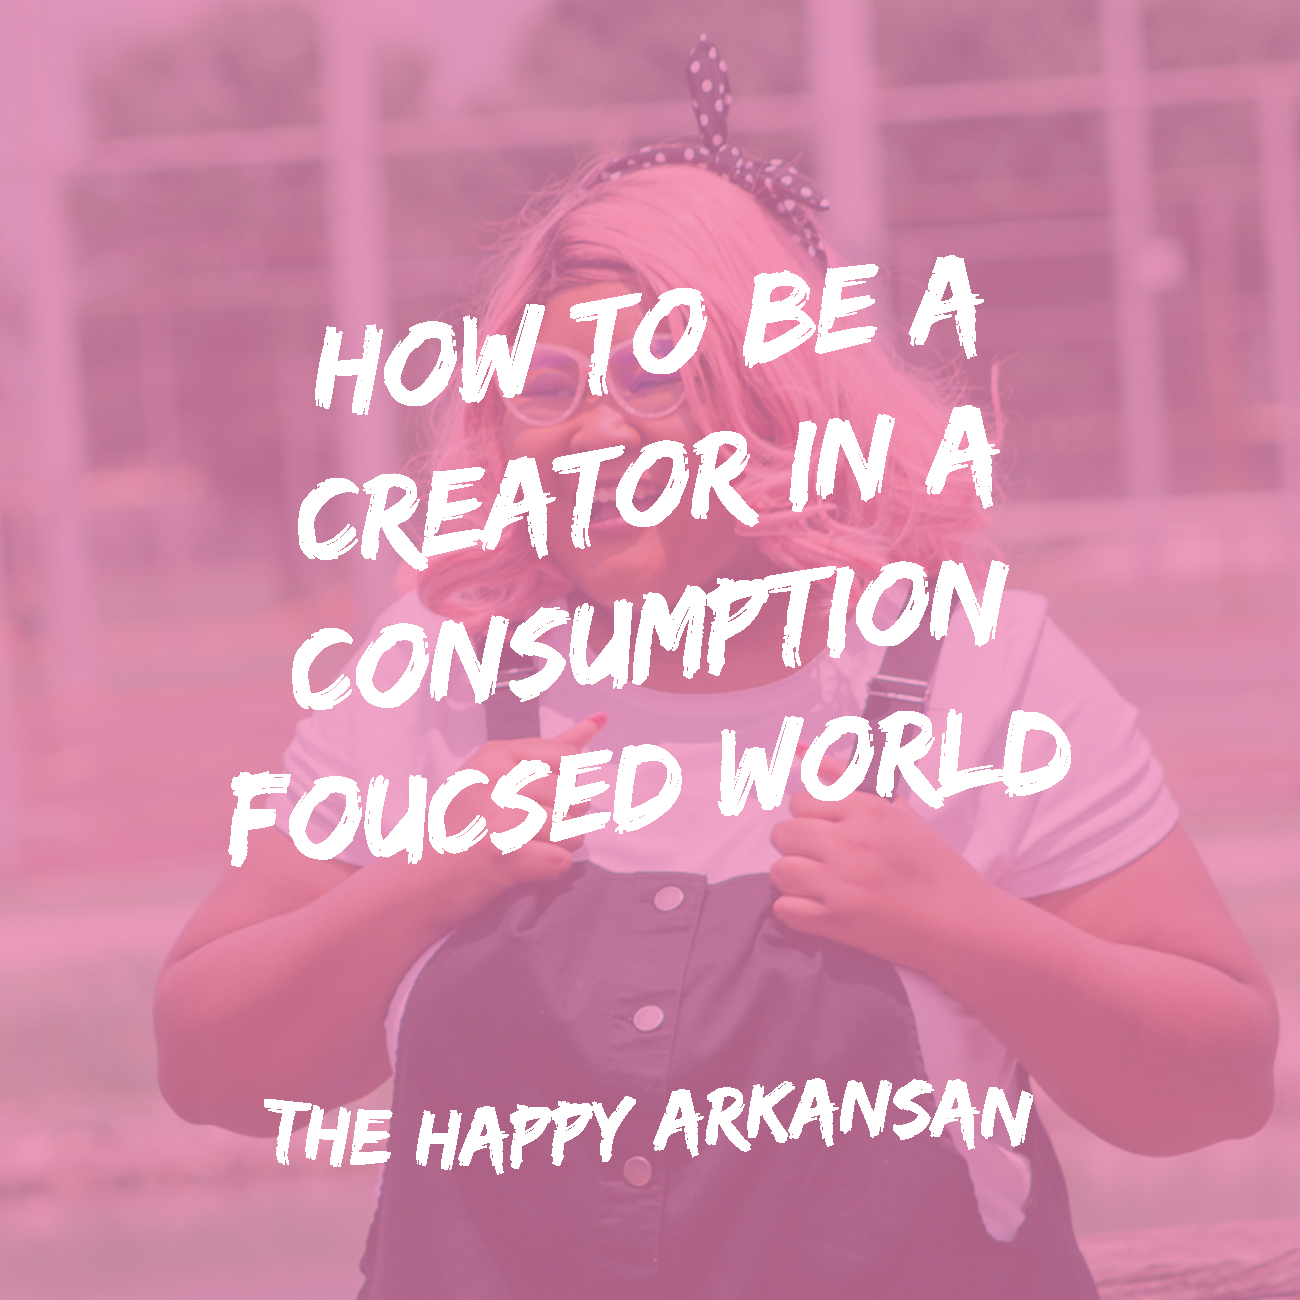 How to be a creator in a consumption focused world